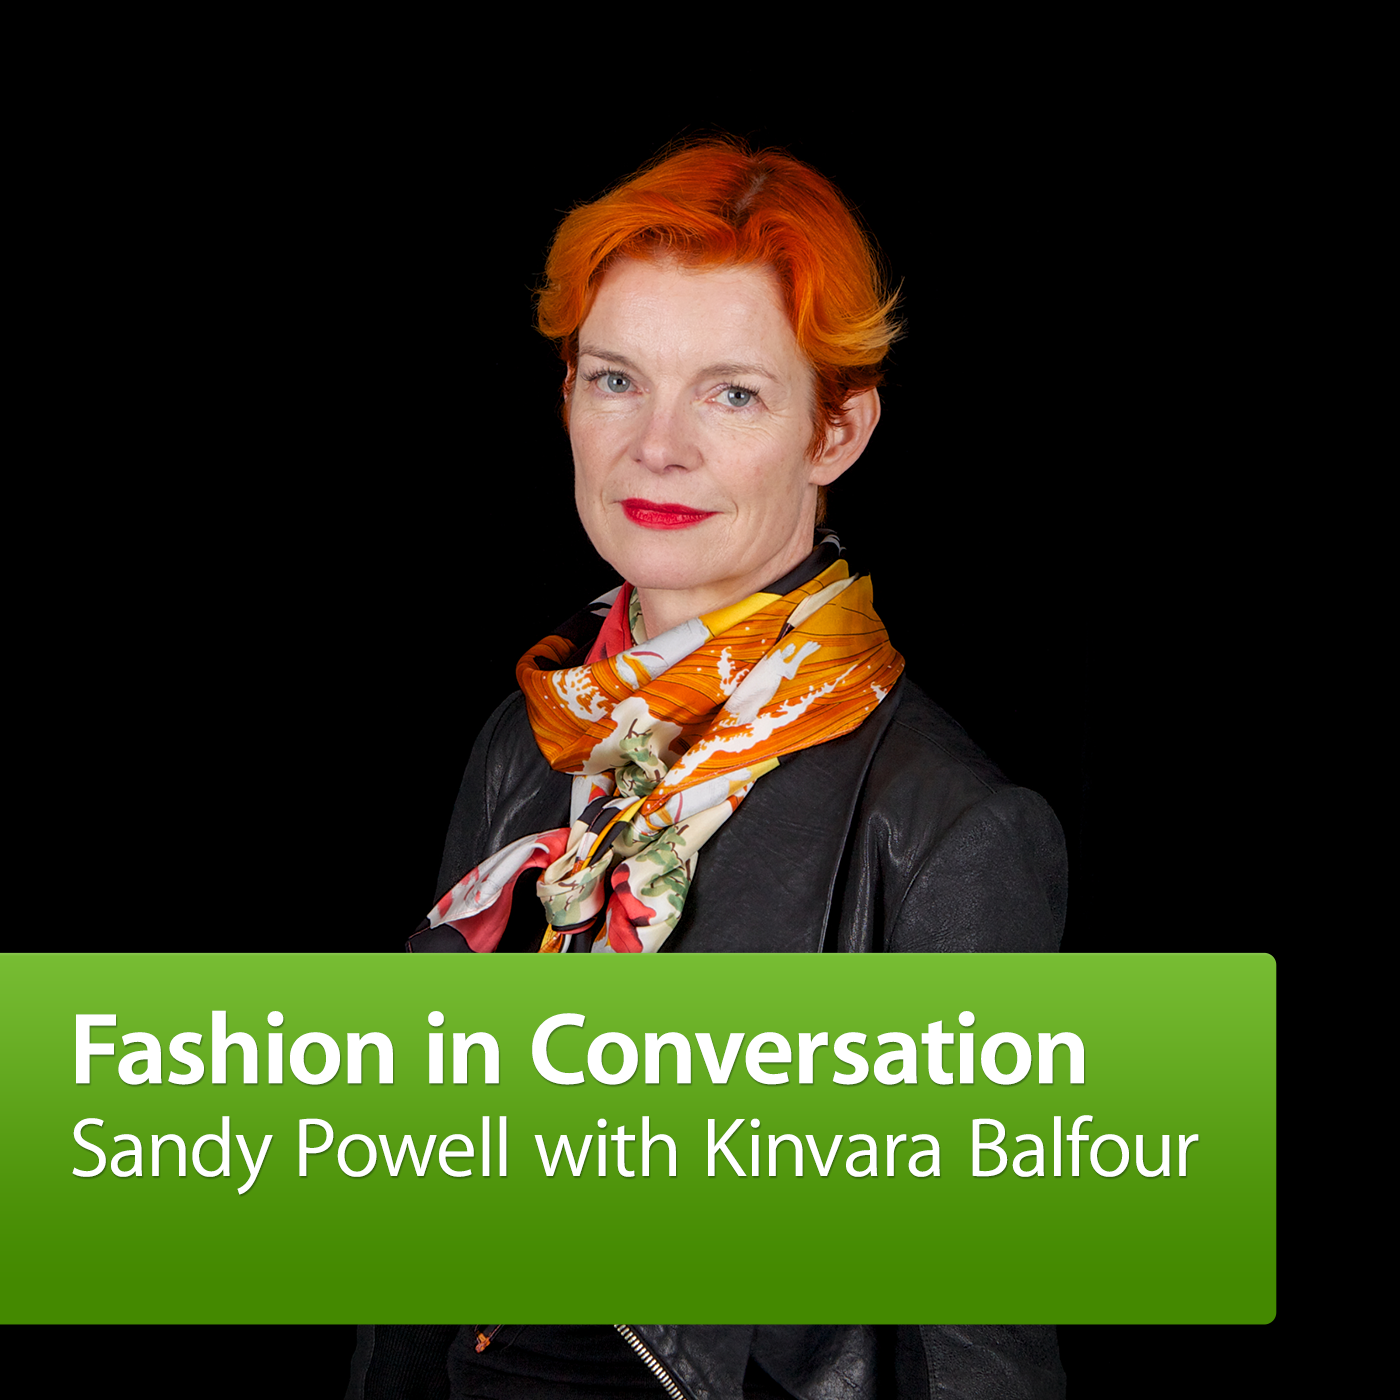 Sandy Powell in Conversation with Kinvara Balfour